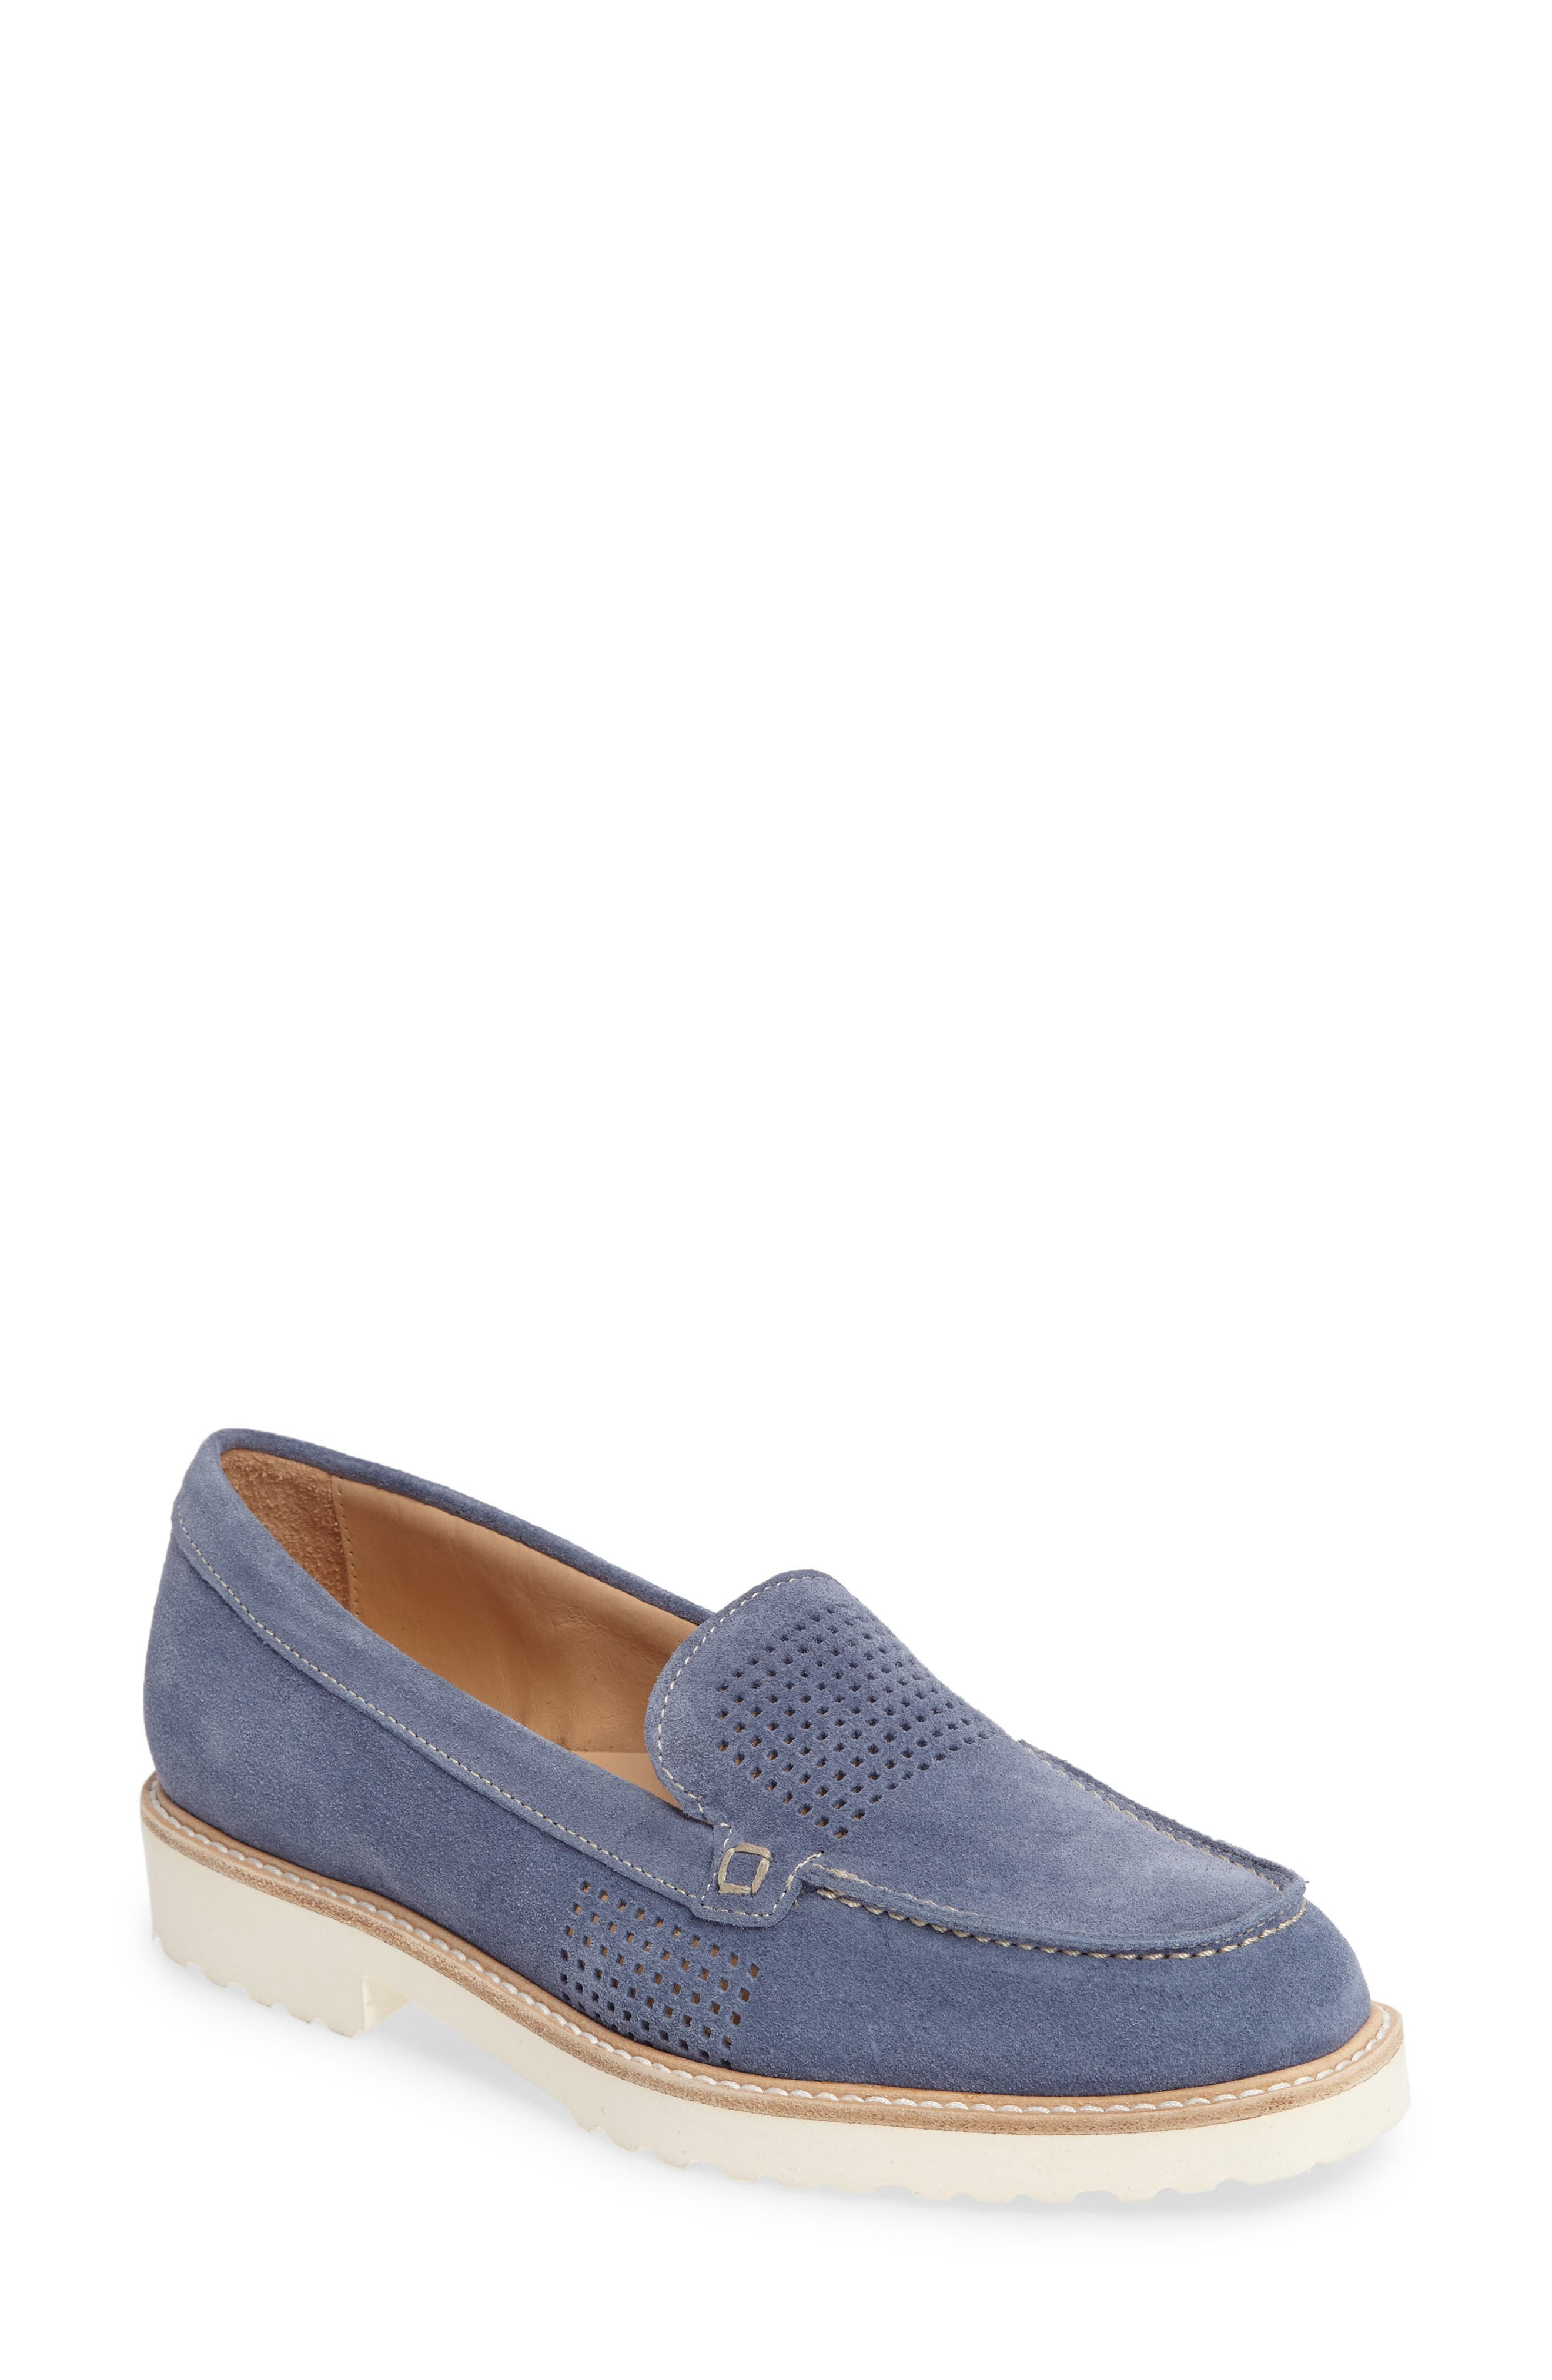 Wazzy Loafer,                             Main thumbnail 1, color,                             400